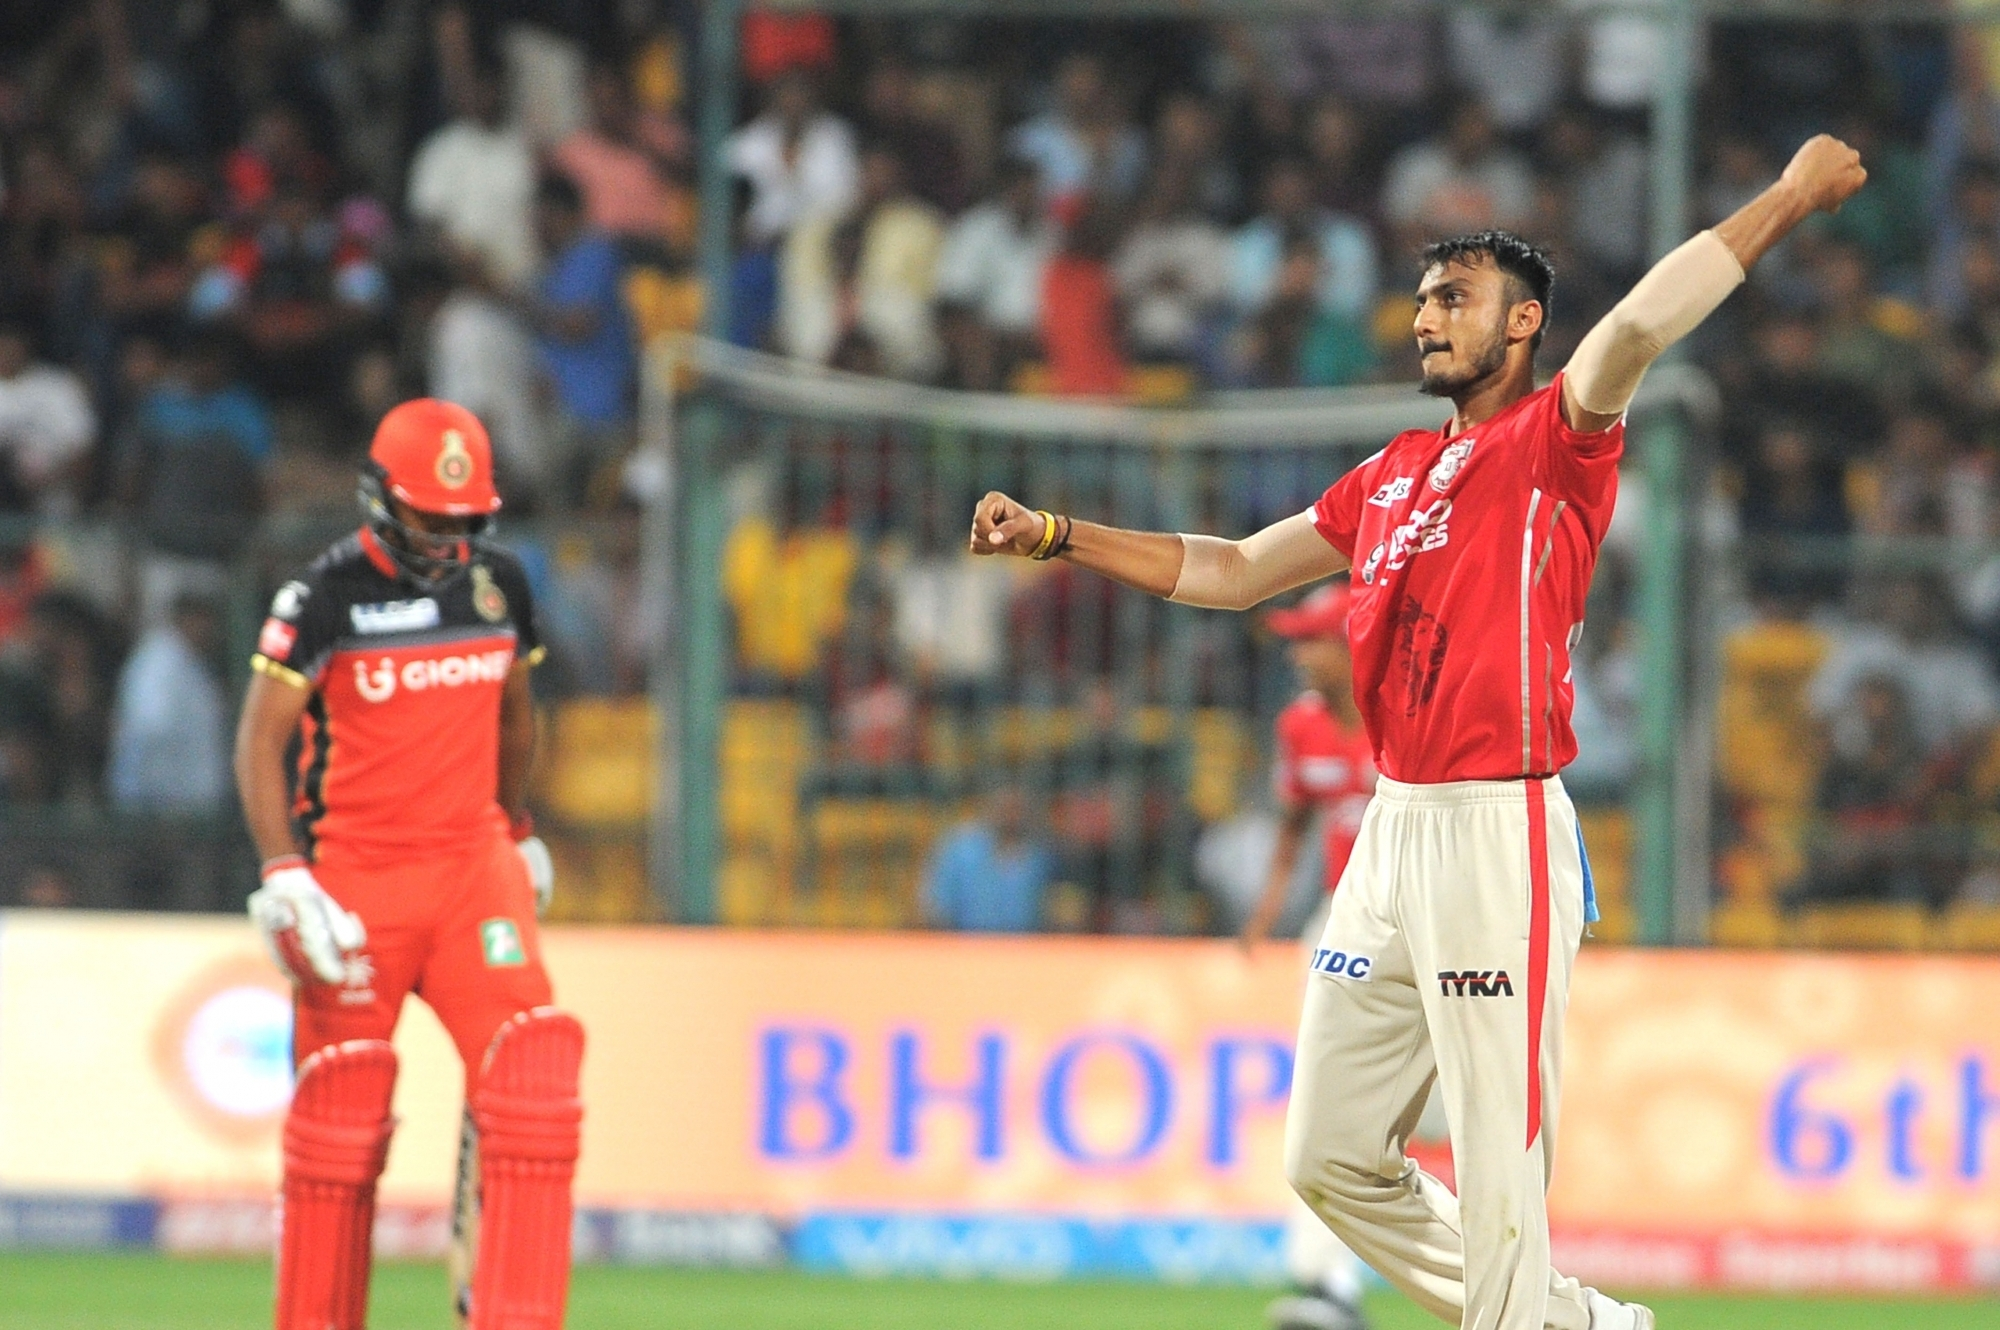 Axar Patel was the only player retained by KXIP (Image: IANS)